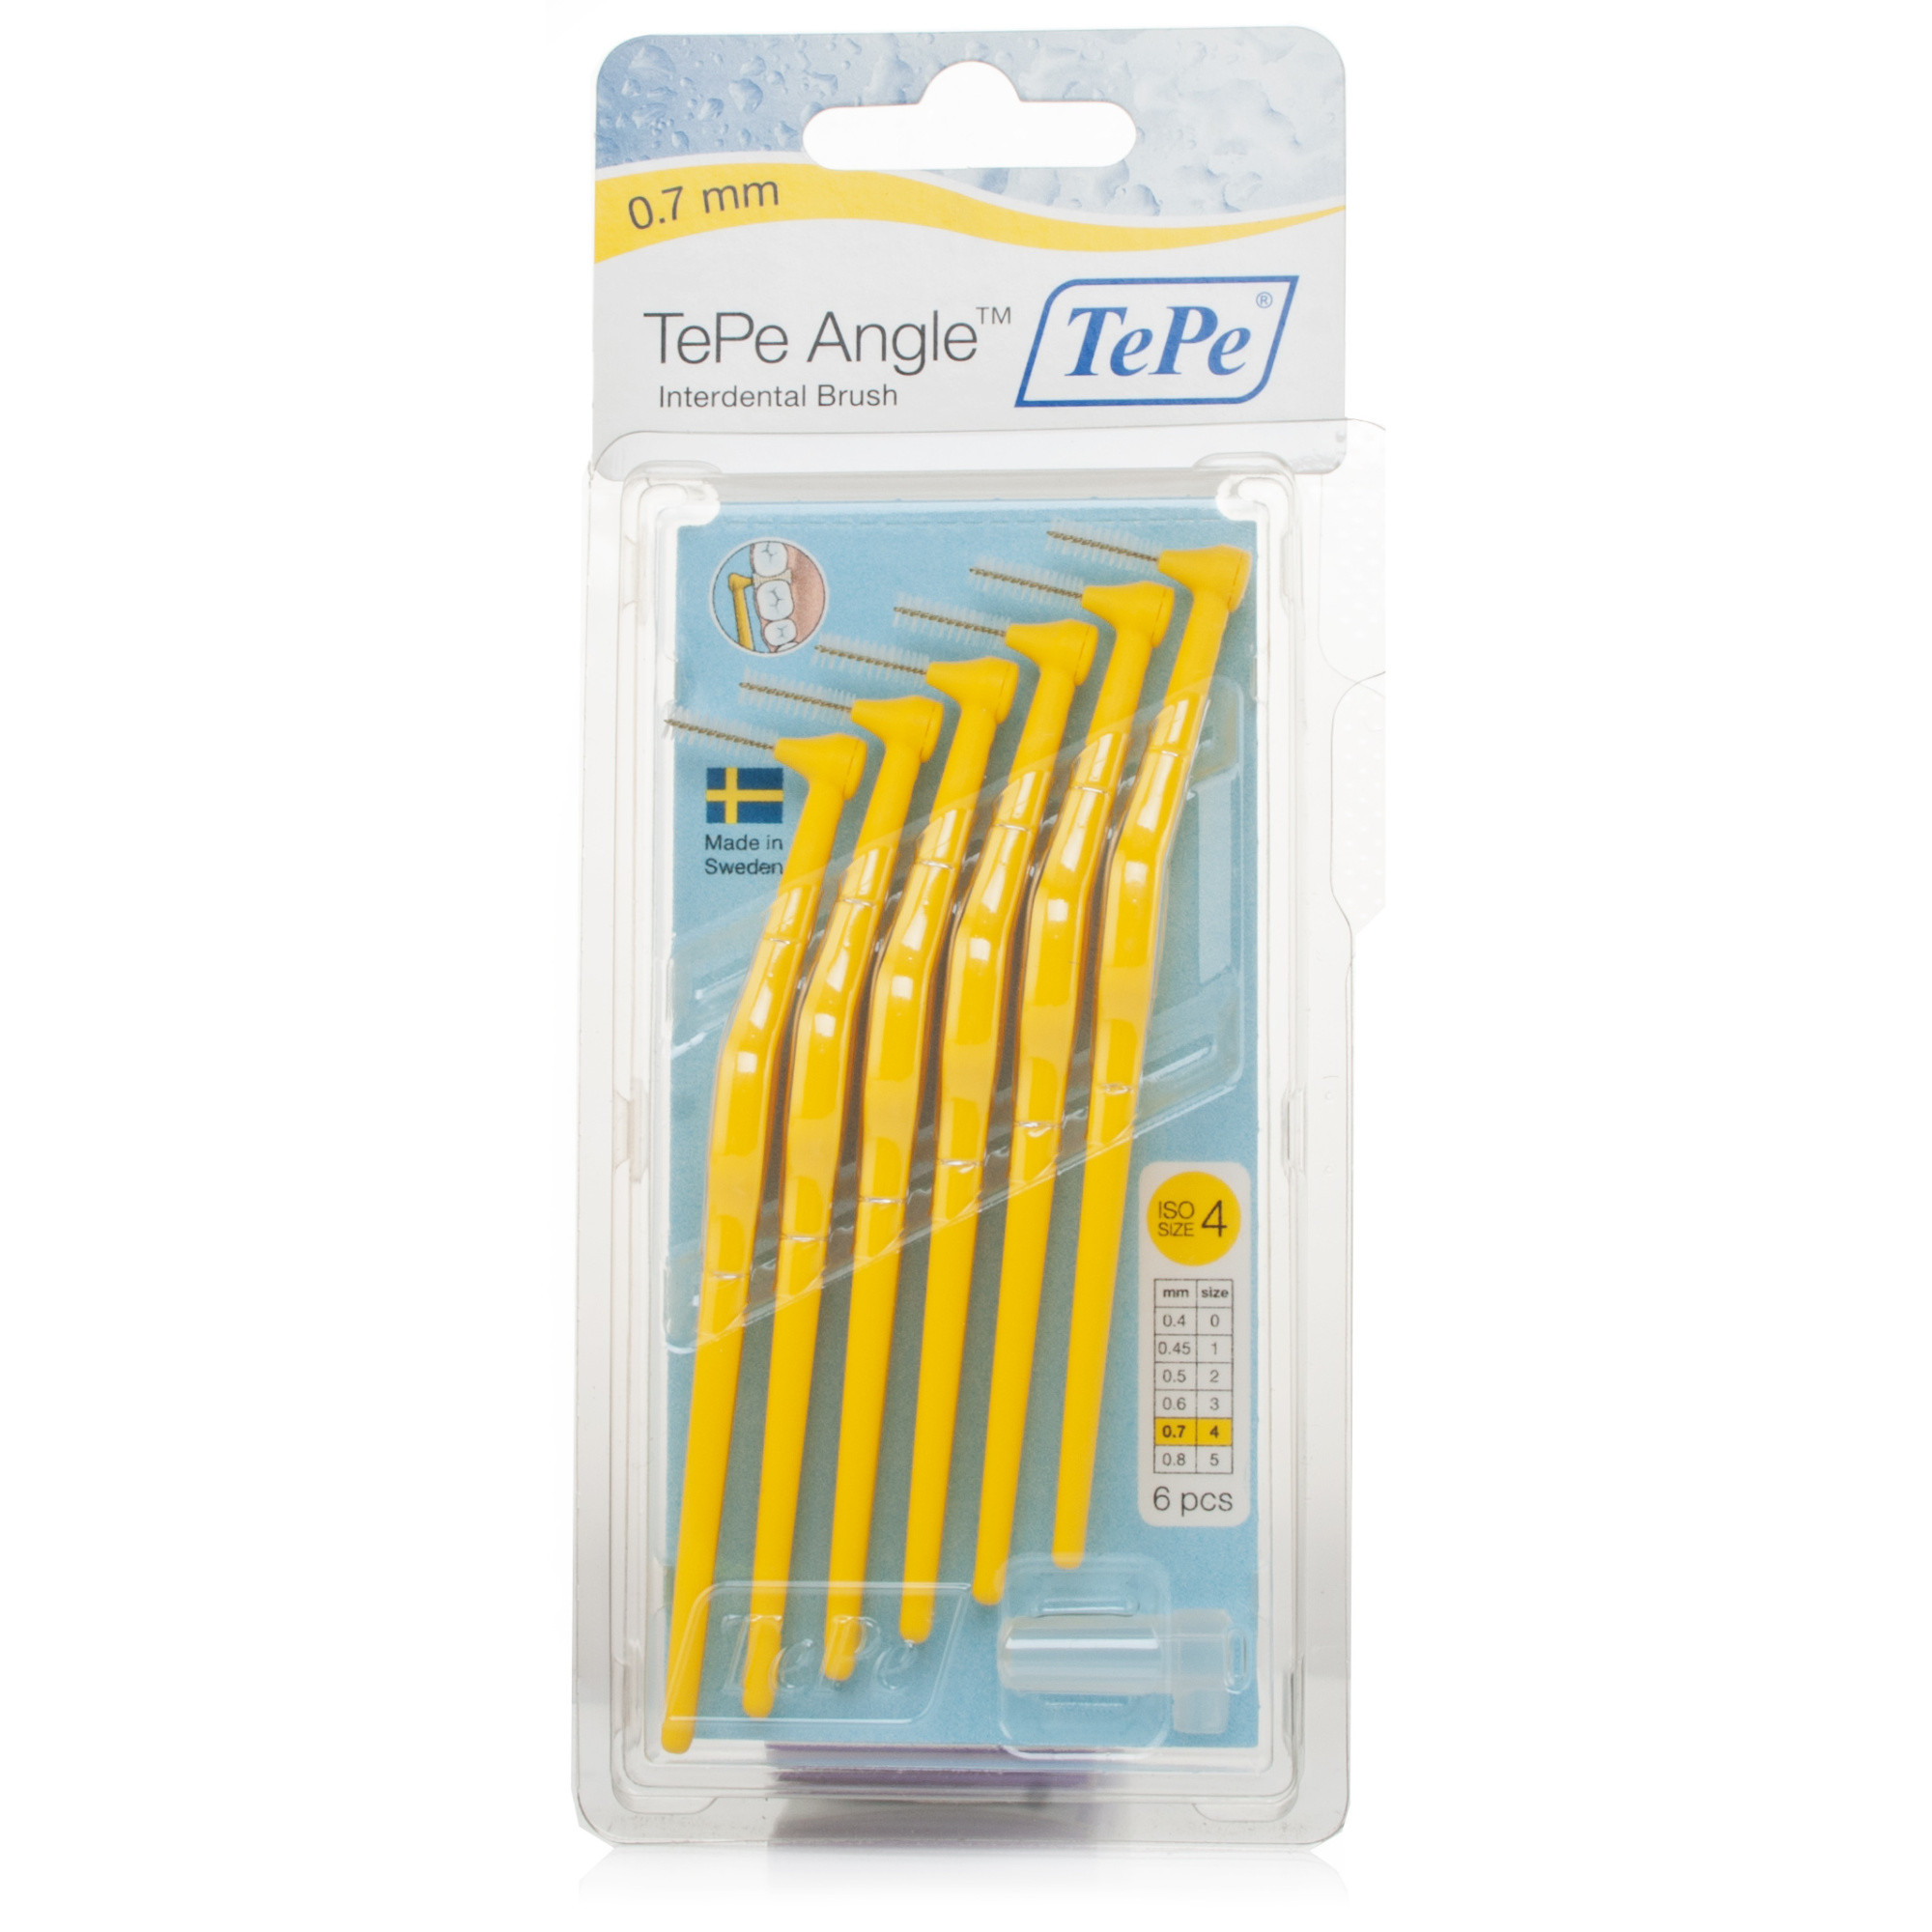 Tepe Angled Interdental Brush Yellow